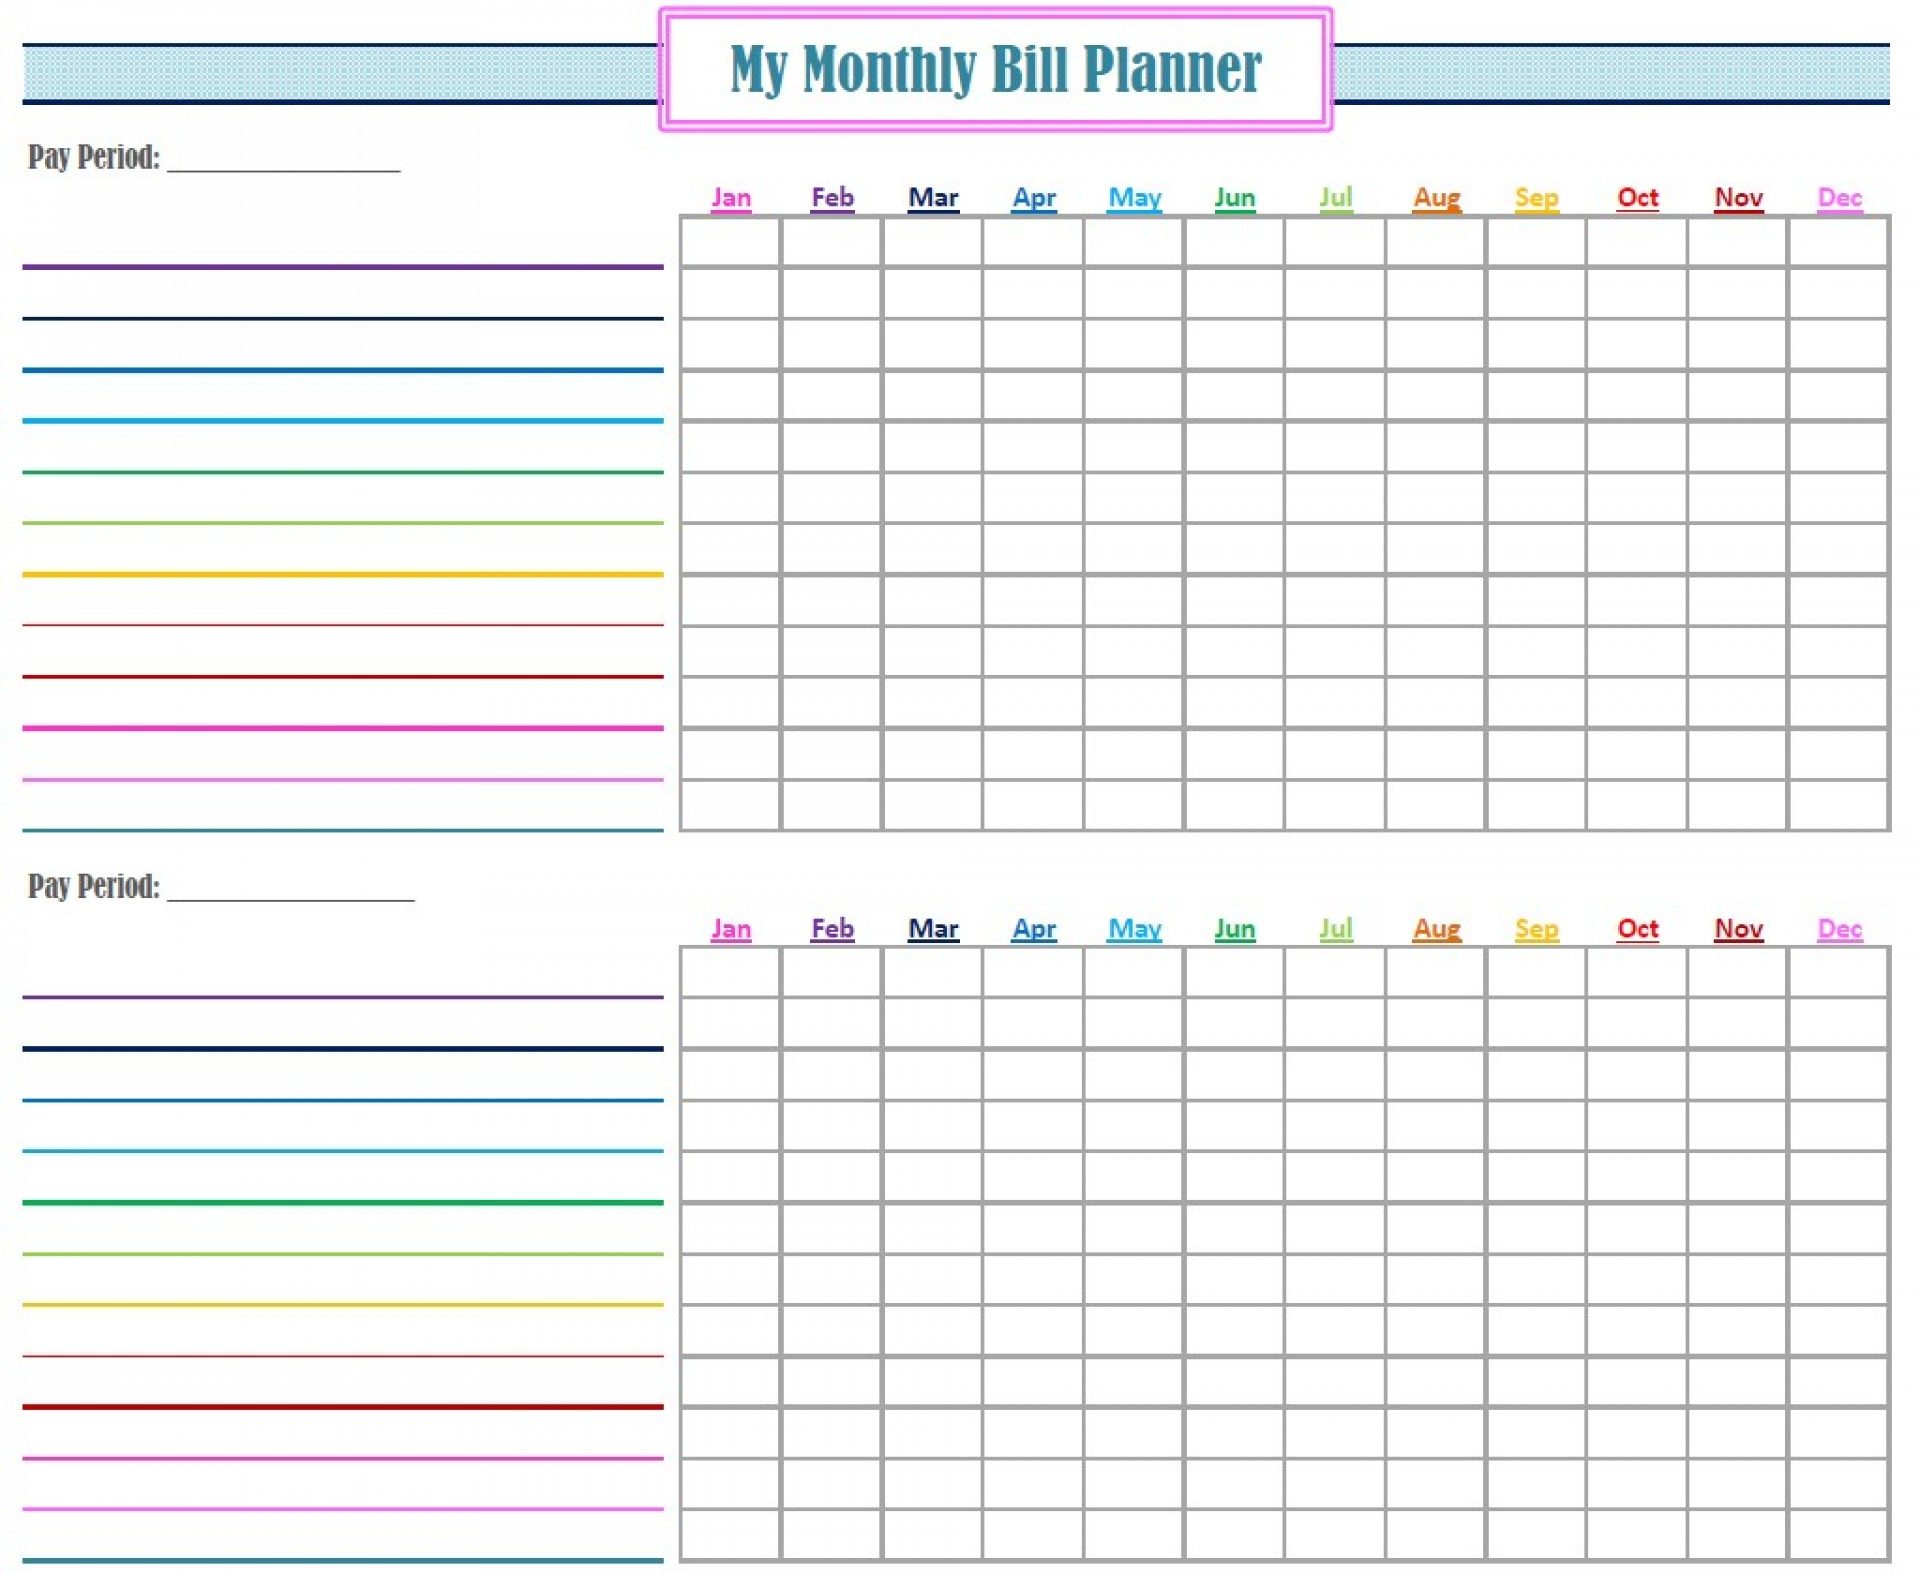 021 Template Ideas Printable Bill Organizer Spreadsheet with regard to Free Printable Bill Payment Calendar